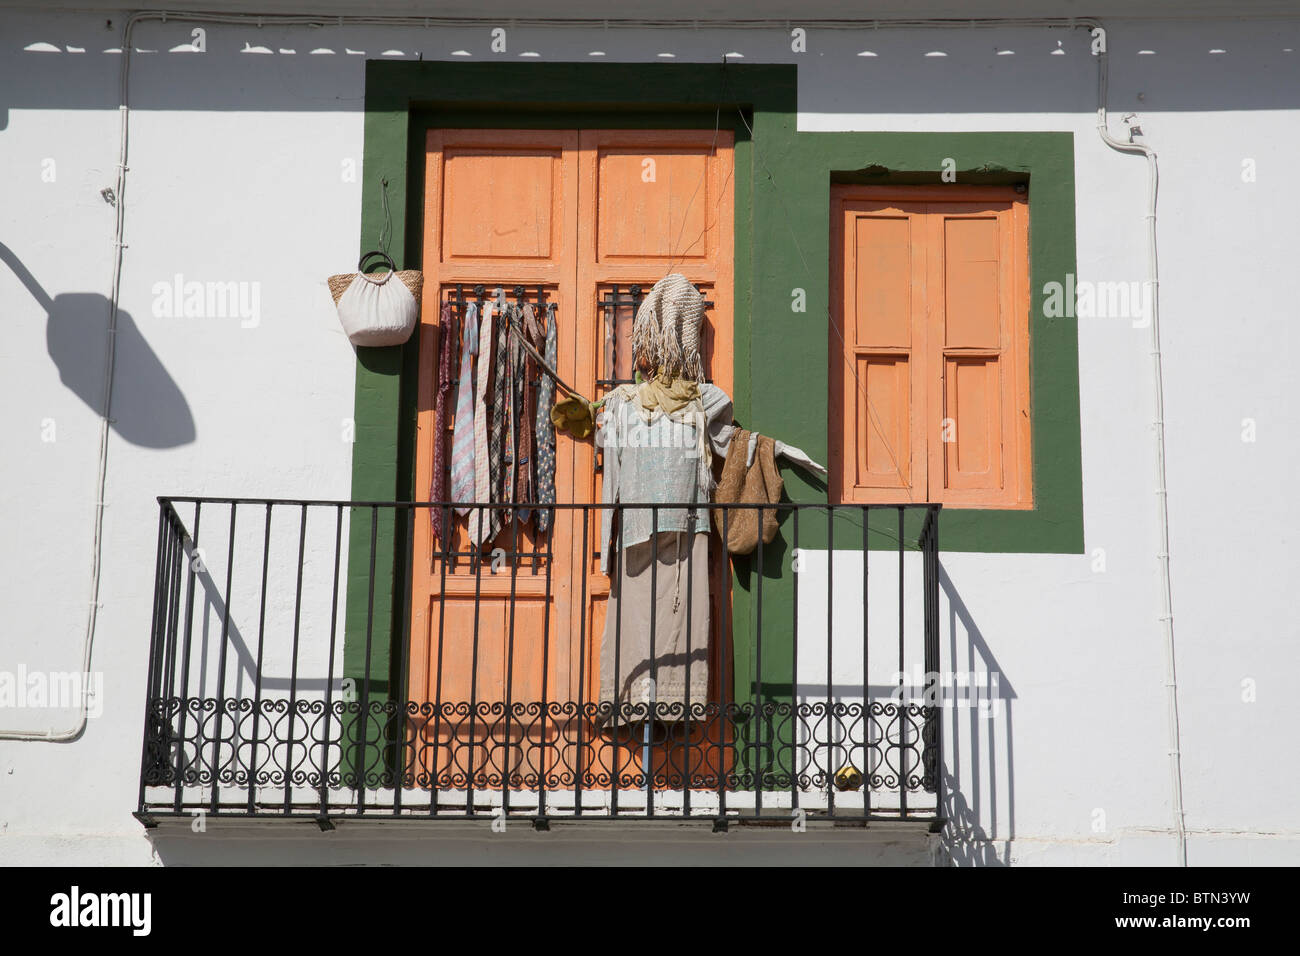 Display of clothes and ties outside a secondhand clothes shop in Valencia, Spain - Stock Image